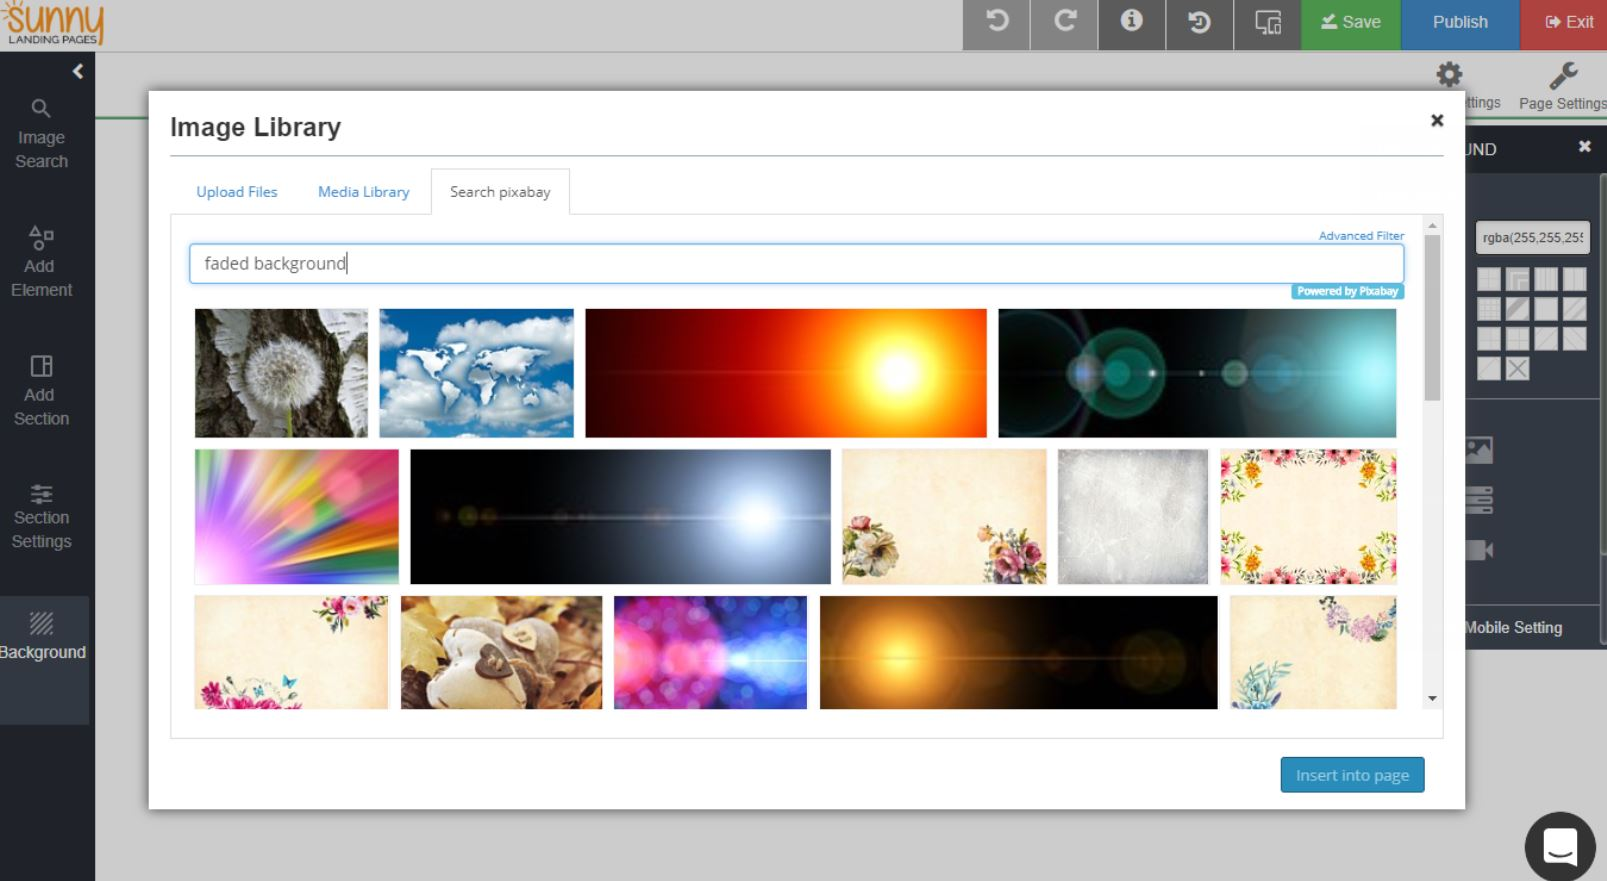 Sunny Landing Pages image library